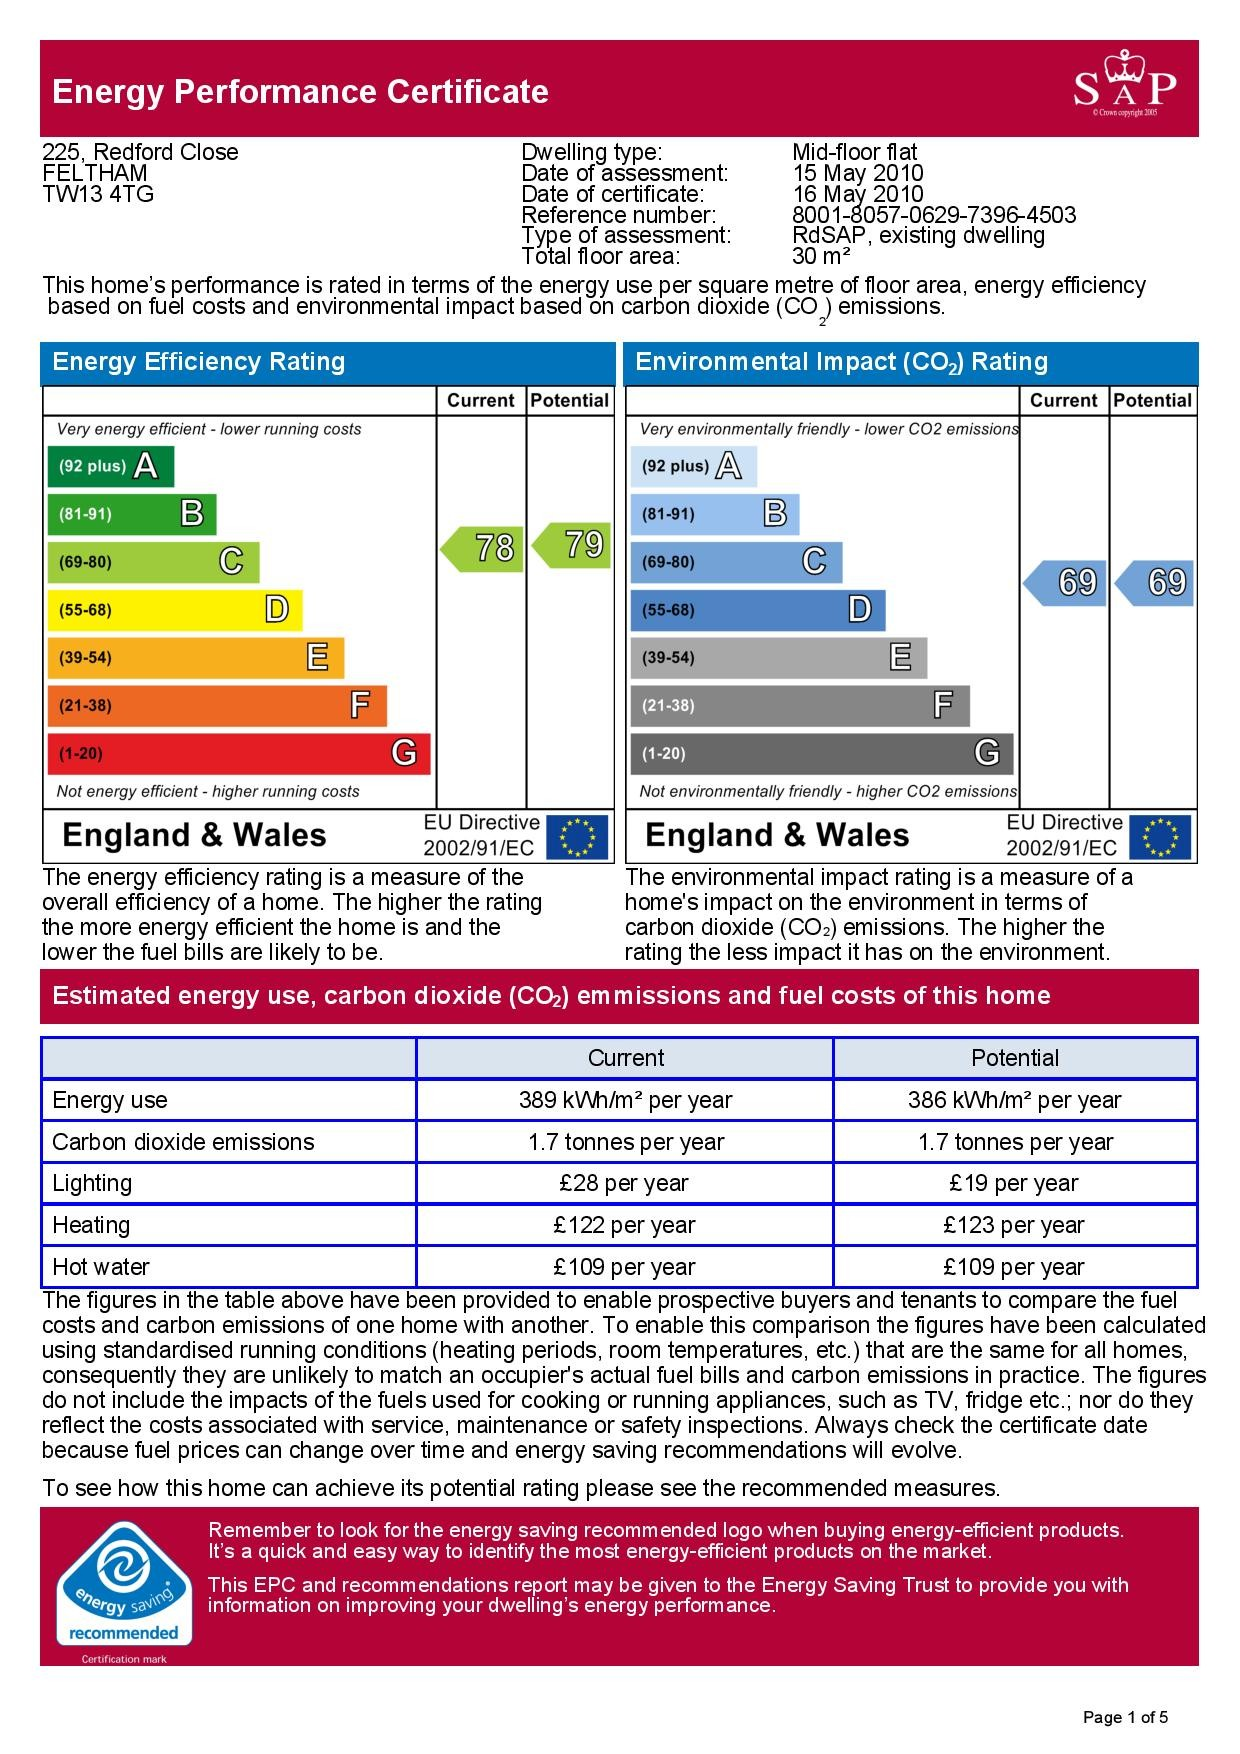 EPC Graph for 225 Redford Close, Feltham, Middlesex TW13 4TG